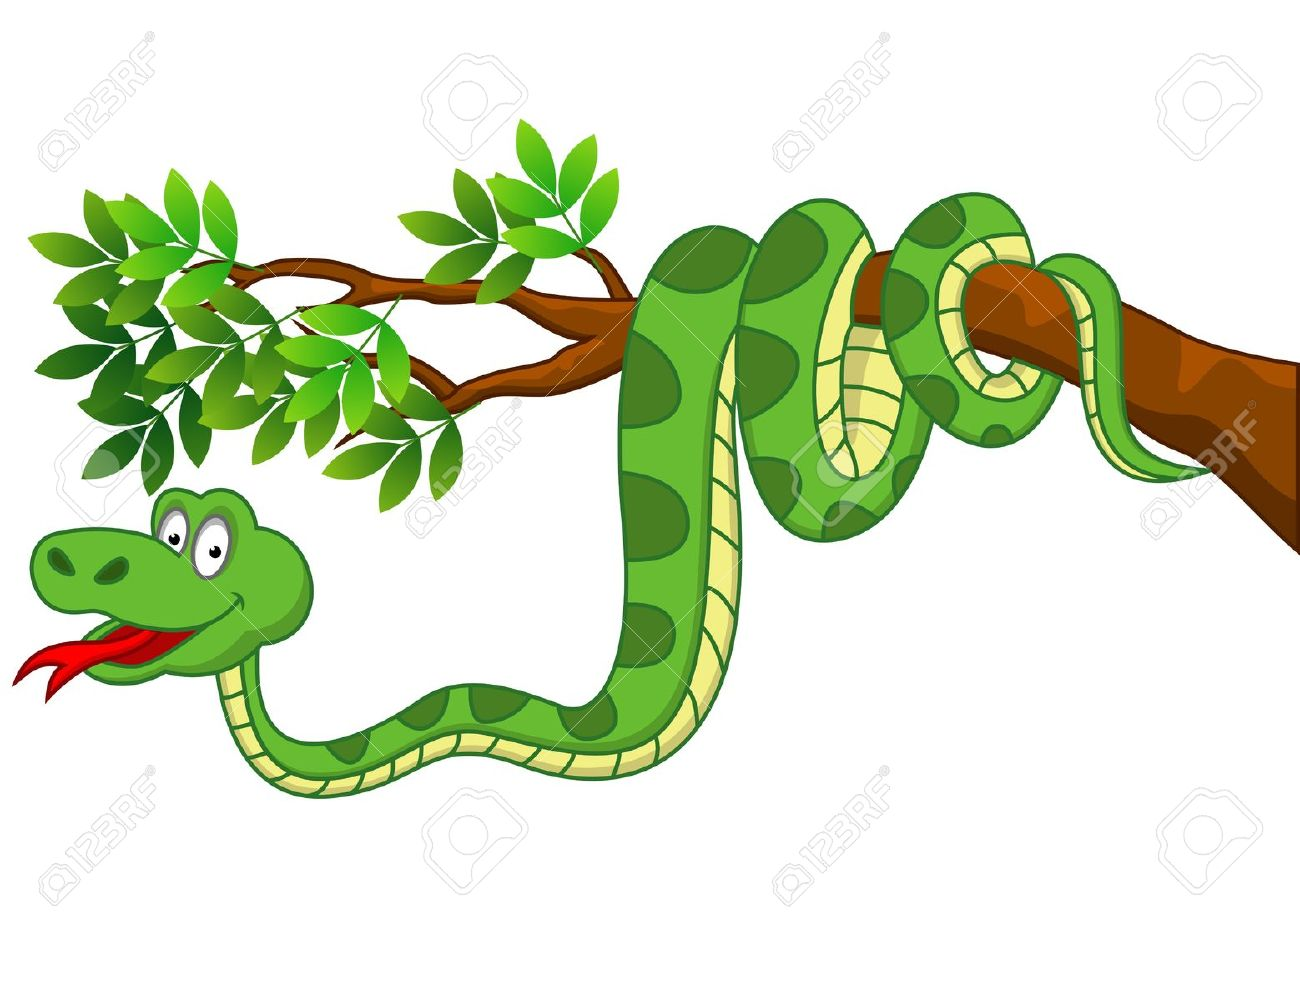 Serpent clipart serpent Images Cliparts Royalty Cartoon collection